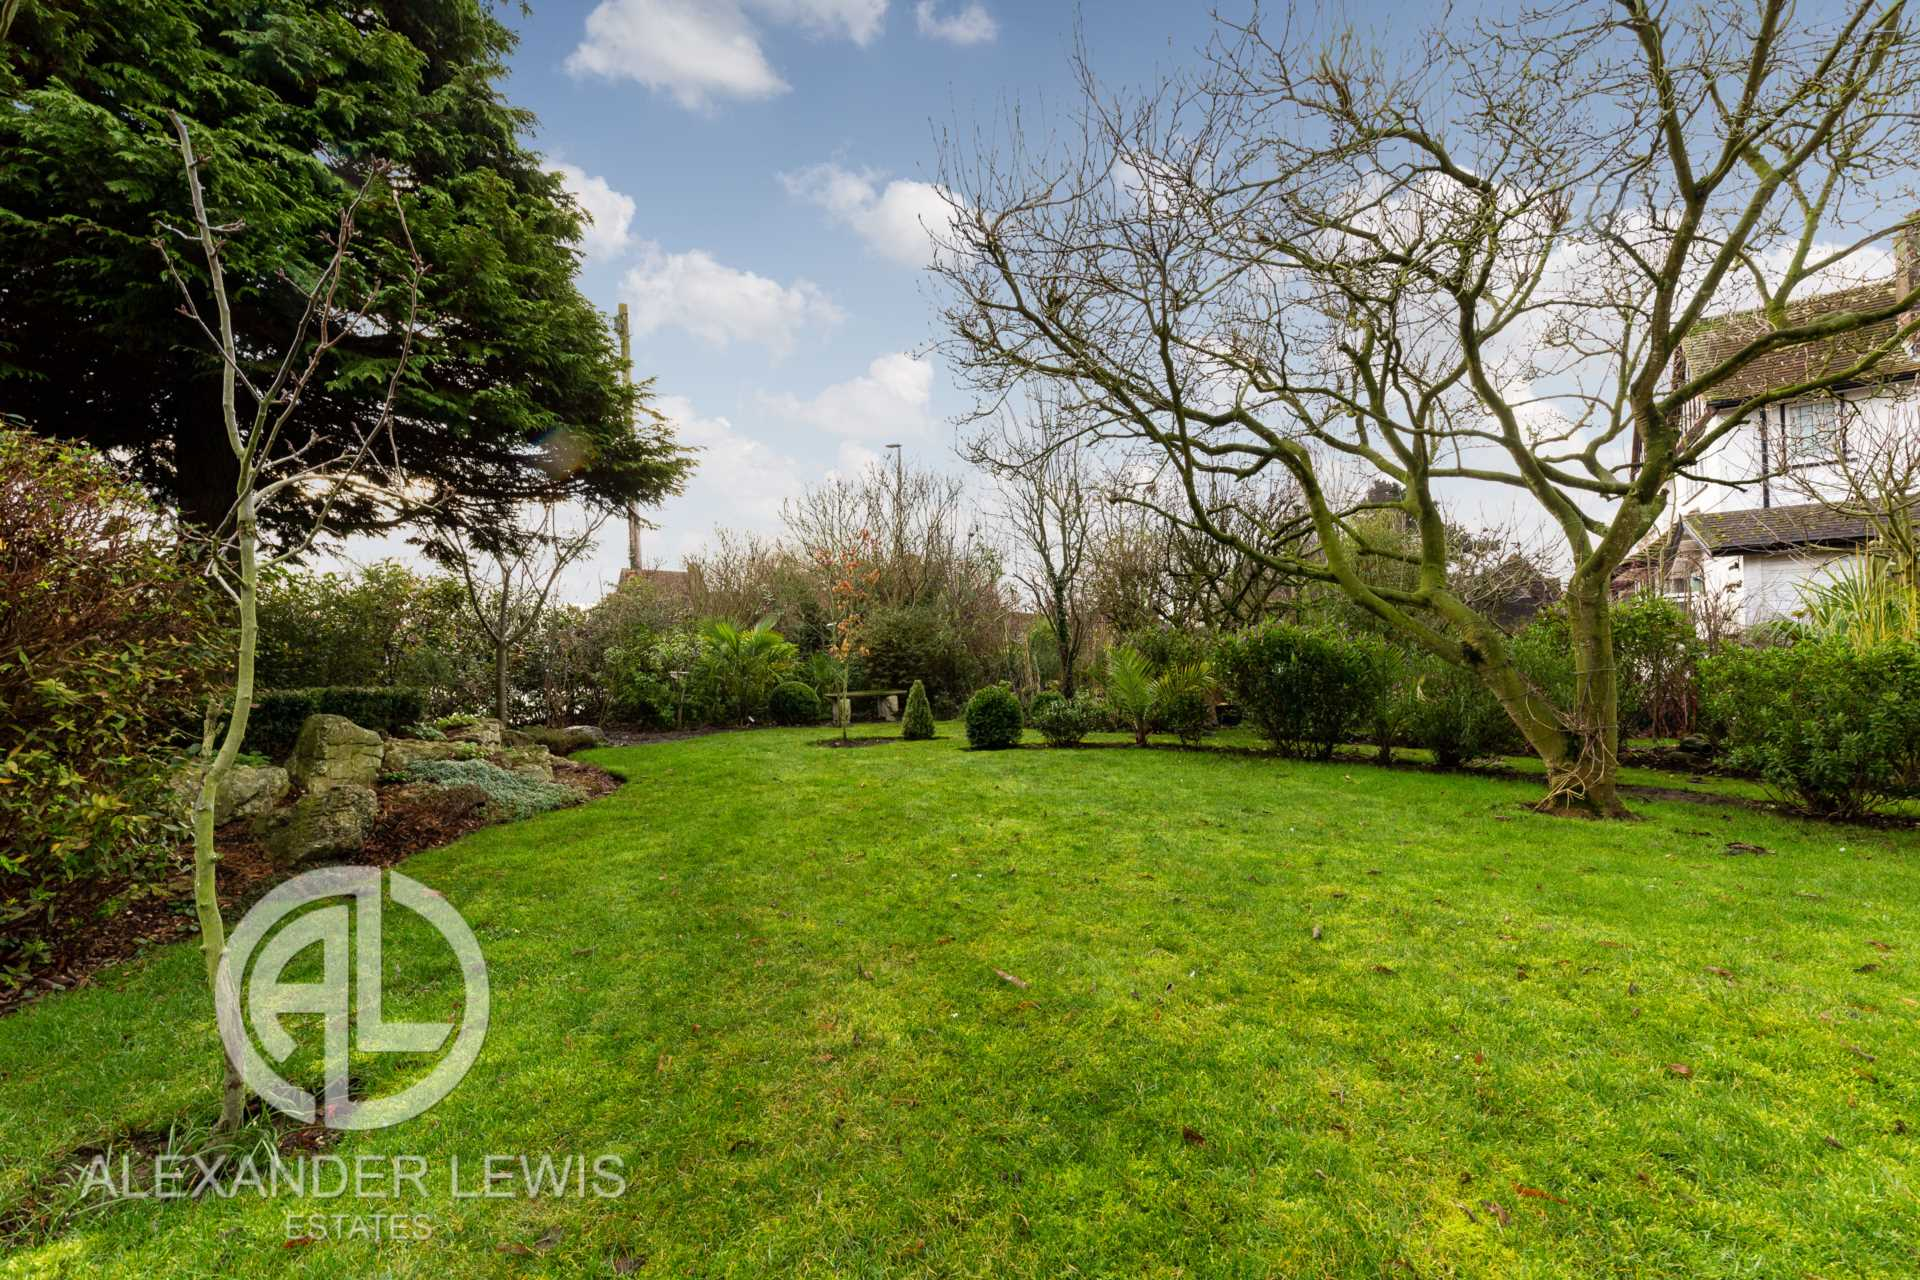 Croft Lane, Letchworth Garden City, SG6 1AP, Image 2